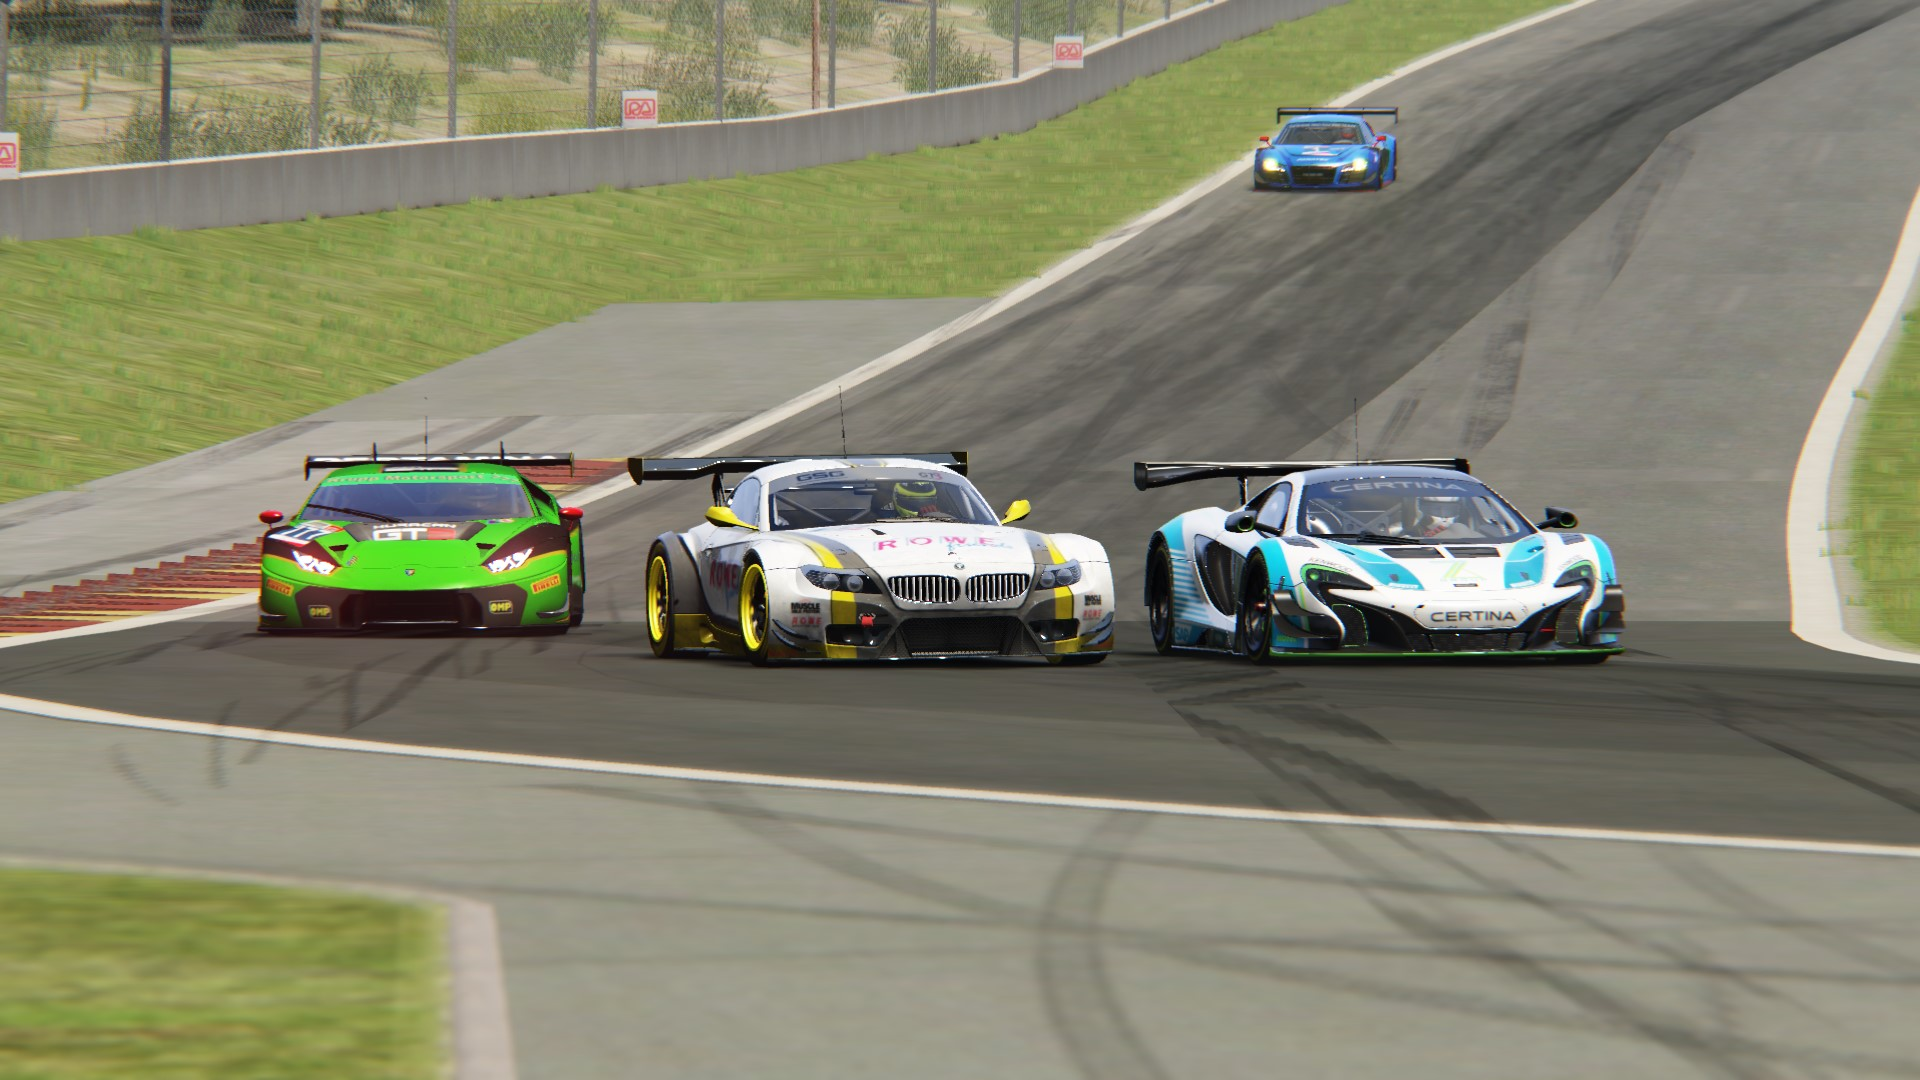 Screenshot_ks_mclaren_650_gt3_road_america_16-4-117-0-14-5.jpg